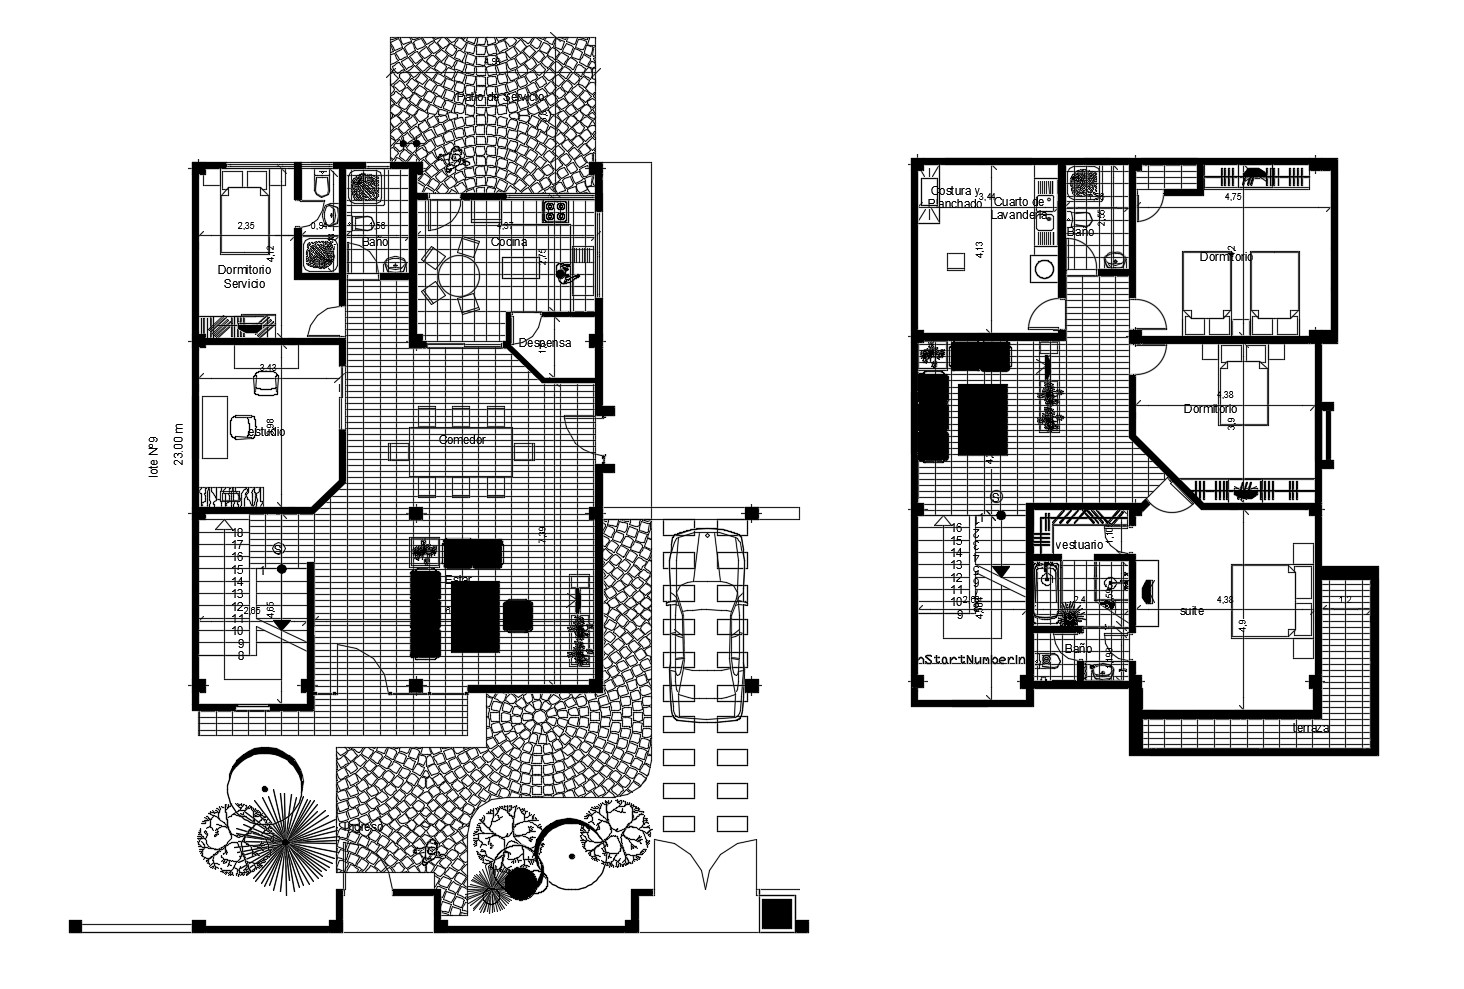 House plan 15.00mtr x 23.00mtr with furniture details in AutoCAD